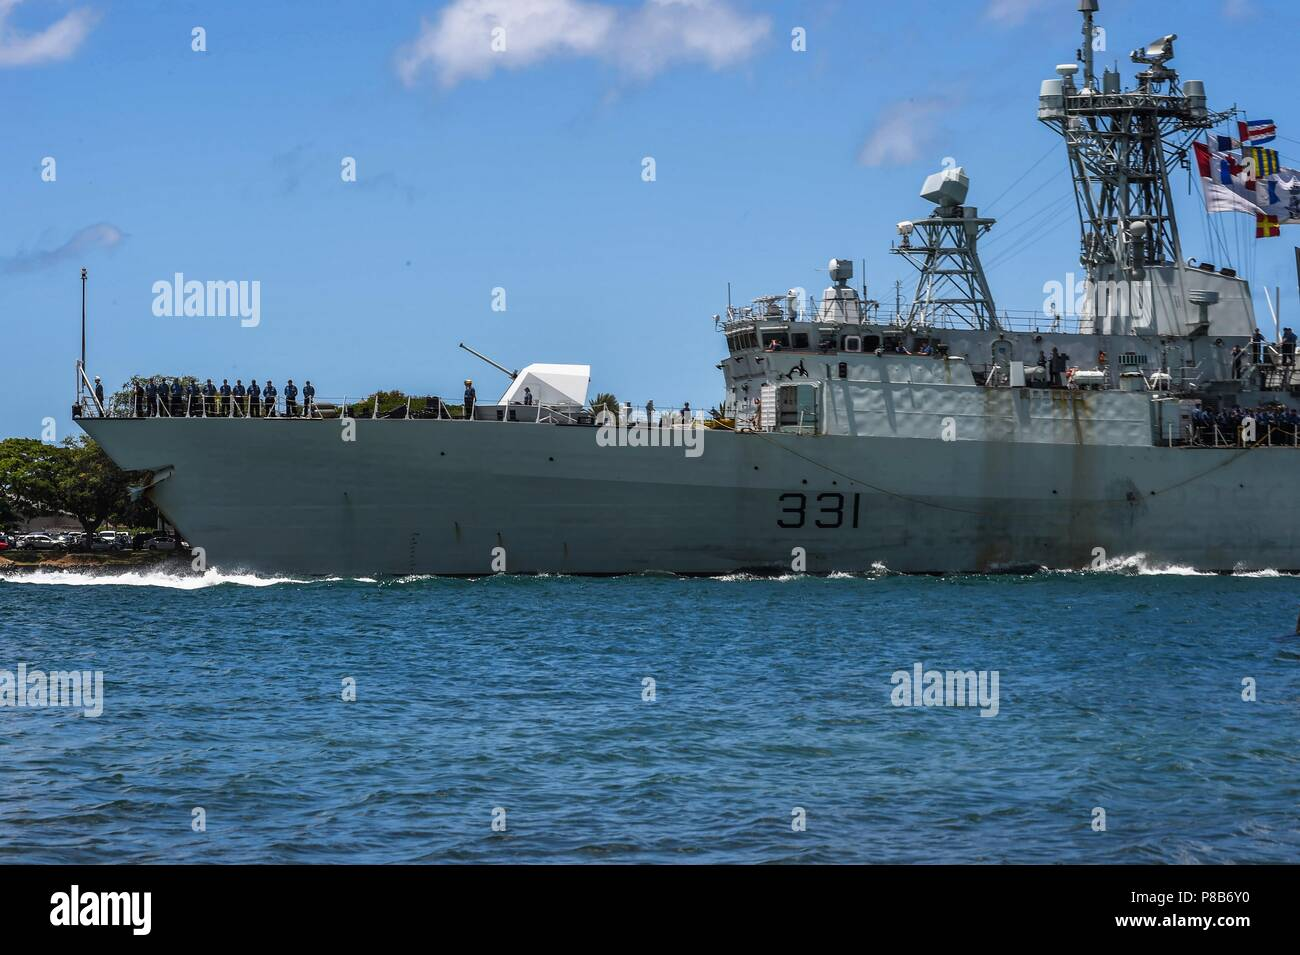 180625-N-FV745-0040 PEARL HARBOR (June 25, 2018) Royal Canadian Navy frigate HMCS Vancouver (FFH 331) arrives at Joint Base Pearl Harbor-Hickam in preparation for RIMPAC 2018, June 25, 2018. Twenty-five nations, more than 45 ships and submarines, about 200 aircraft and 25, 000 personnel are participating in RIMPAC from June 27 to Aug. 2 in and around the Hawaiian Islands and Southern California. The world's largest international maritime exercise, RIMPAC provides a unique training opportunity while fostering and sustaining cooperative relationships among participants critical to ensuring the s - Stock Image